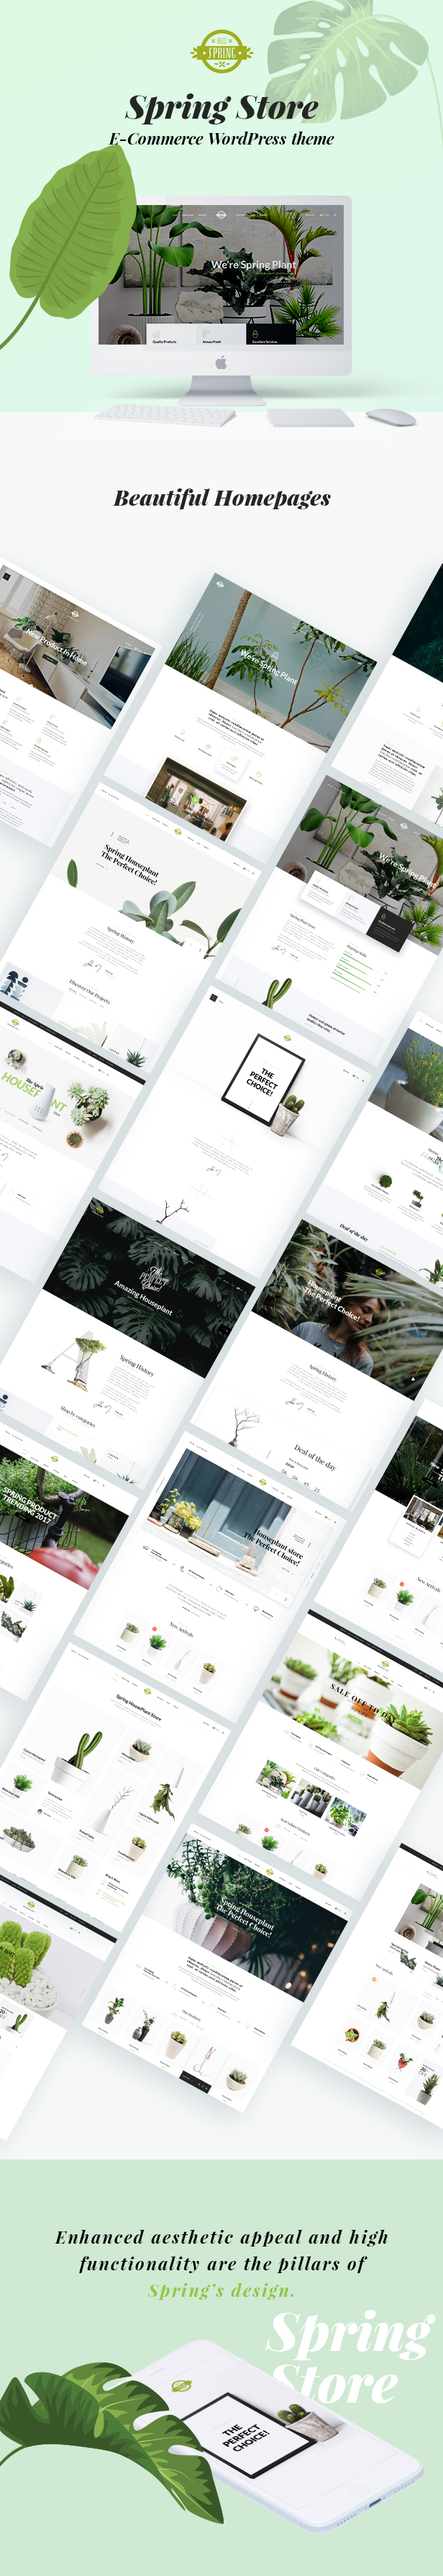 Spring Plants - Gardening & Houseplants WordPress Theme - 11